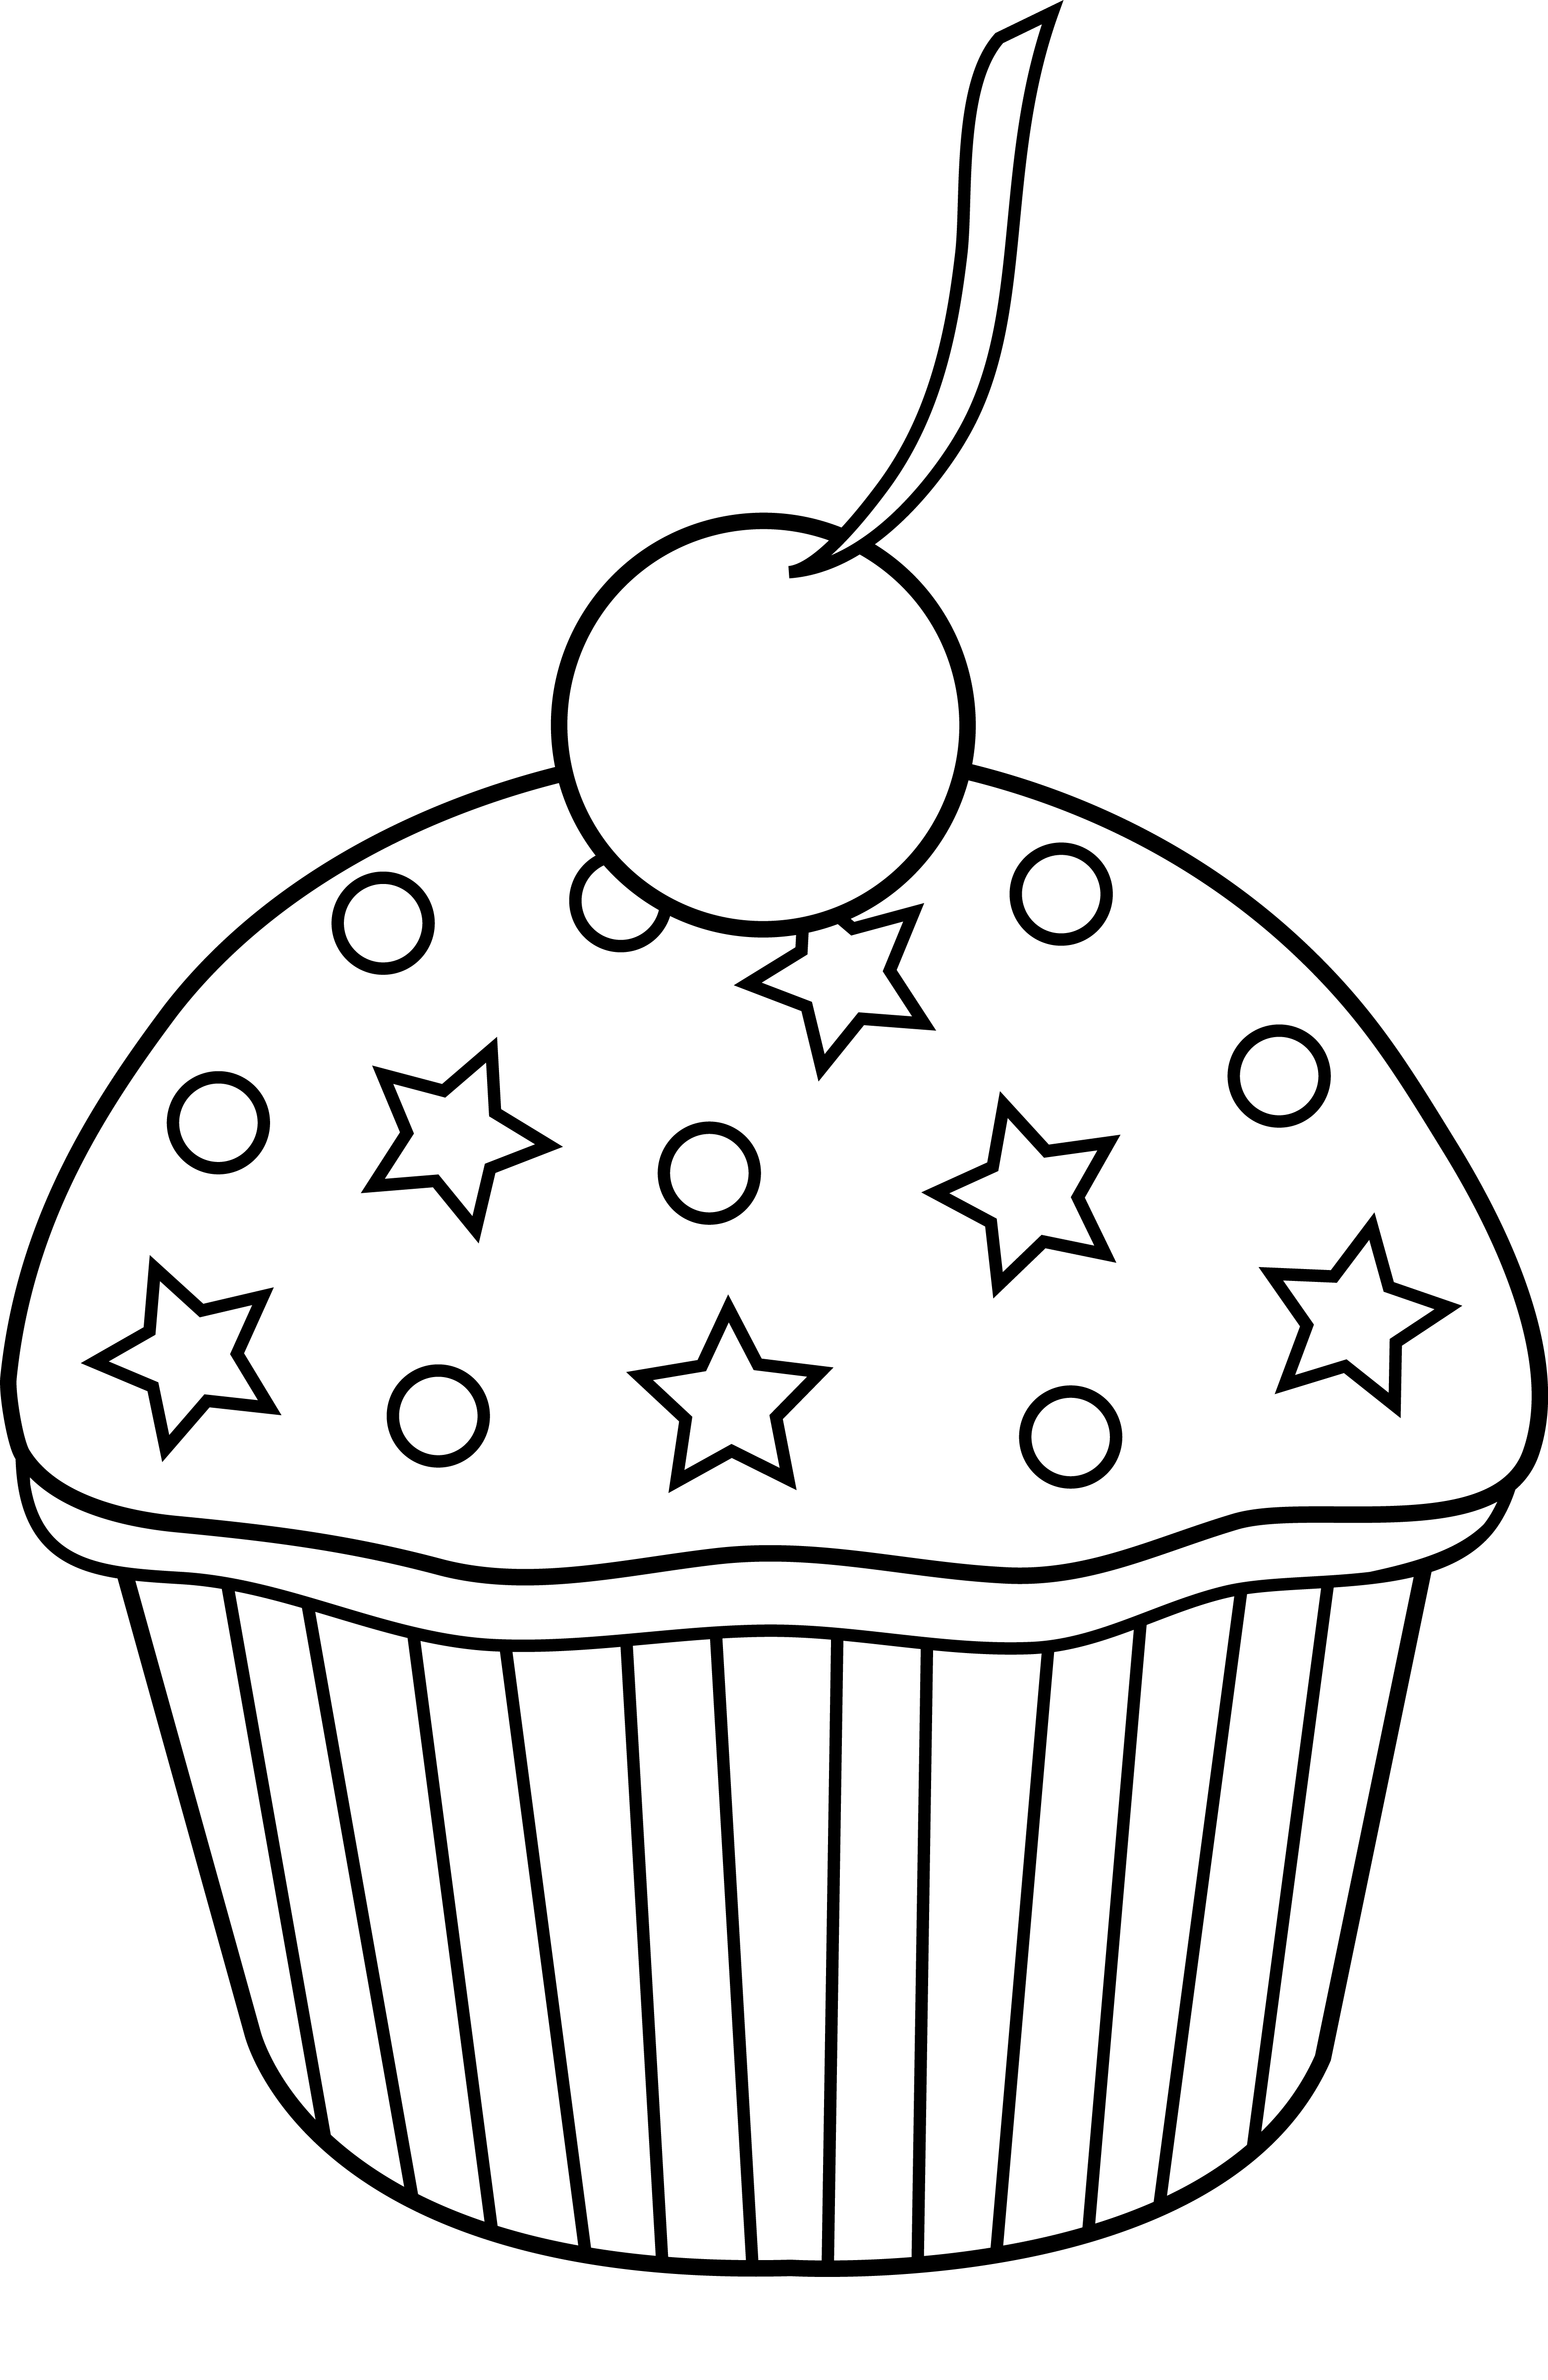 Stack of cupcakes clipart black and white banner freeuse stock Cupcake cup cake clip art art of white party icons app clip ... banner freeuse stock